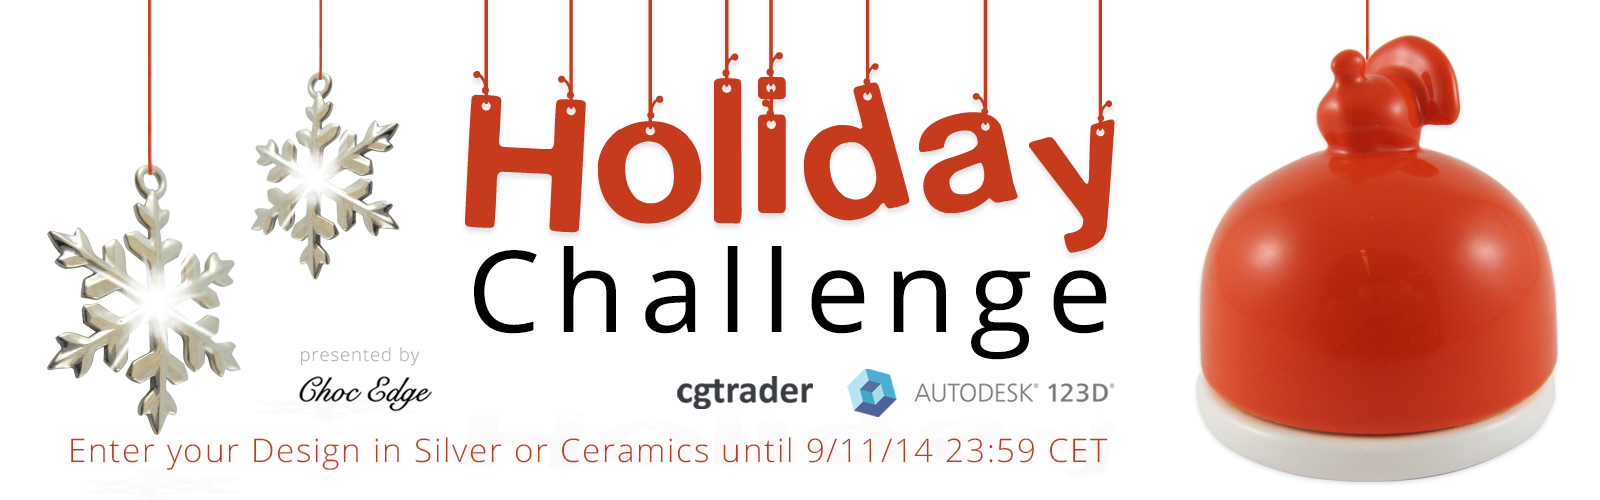 Join the CGTrader and i.materialise Holiday Gift Challenge and Enter to Win a Free Ceramics or Sterling Silver Print plus a Premium 123D License!